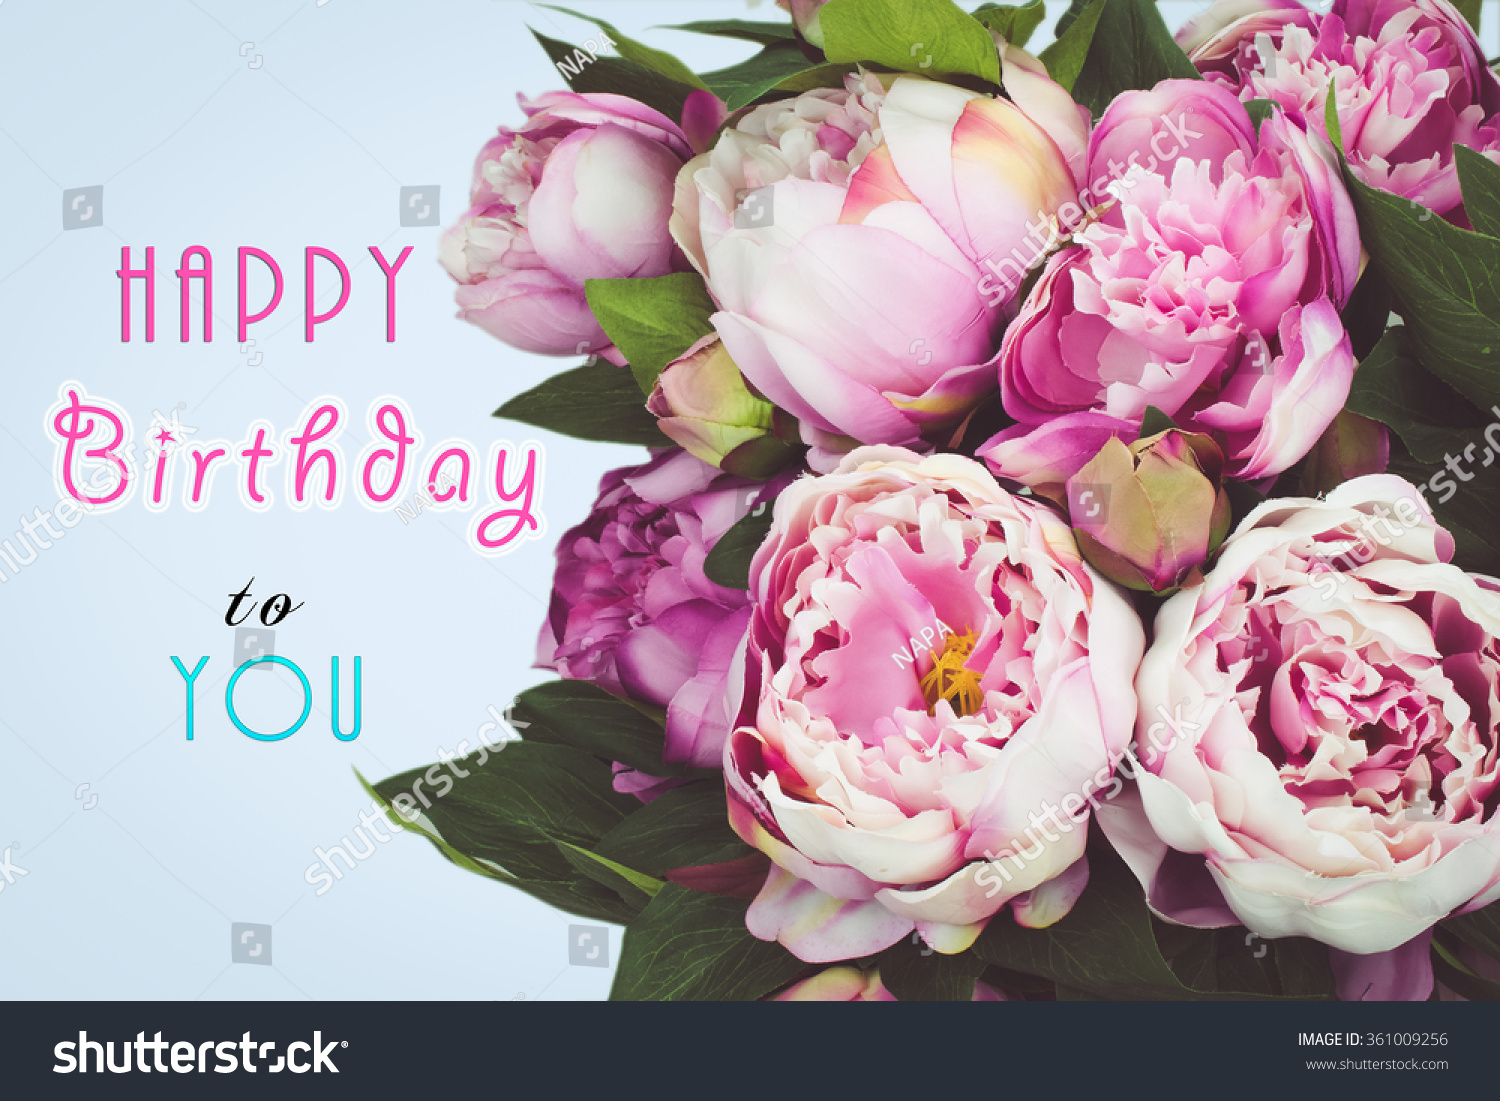 Happy birthday text card pink peony stock photo 361009256 happy birthday text card with pink peony flowers blue background dhlflorist Images